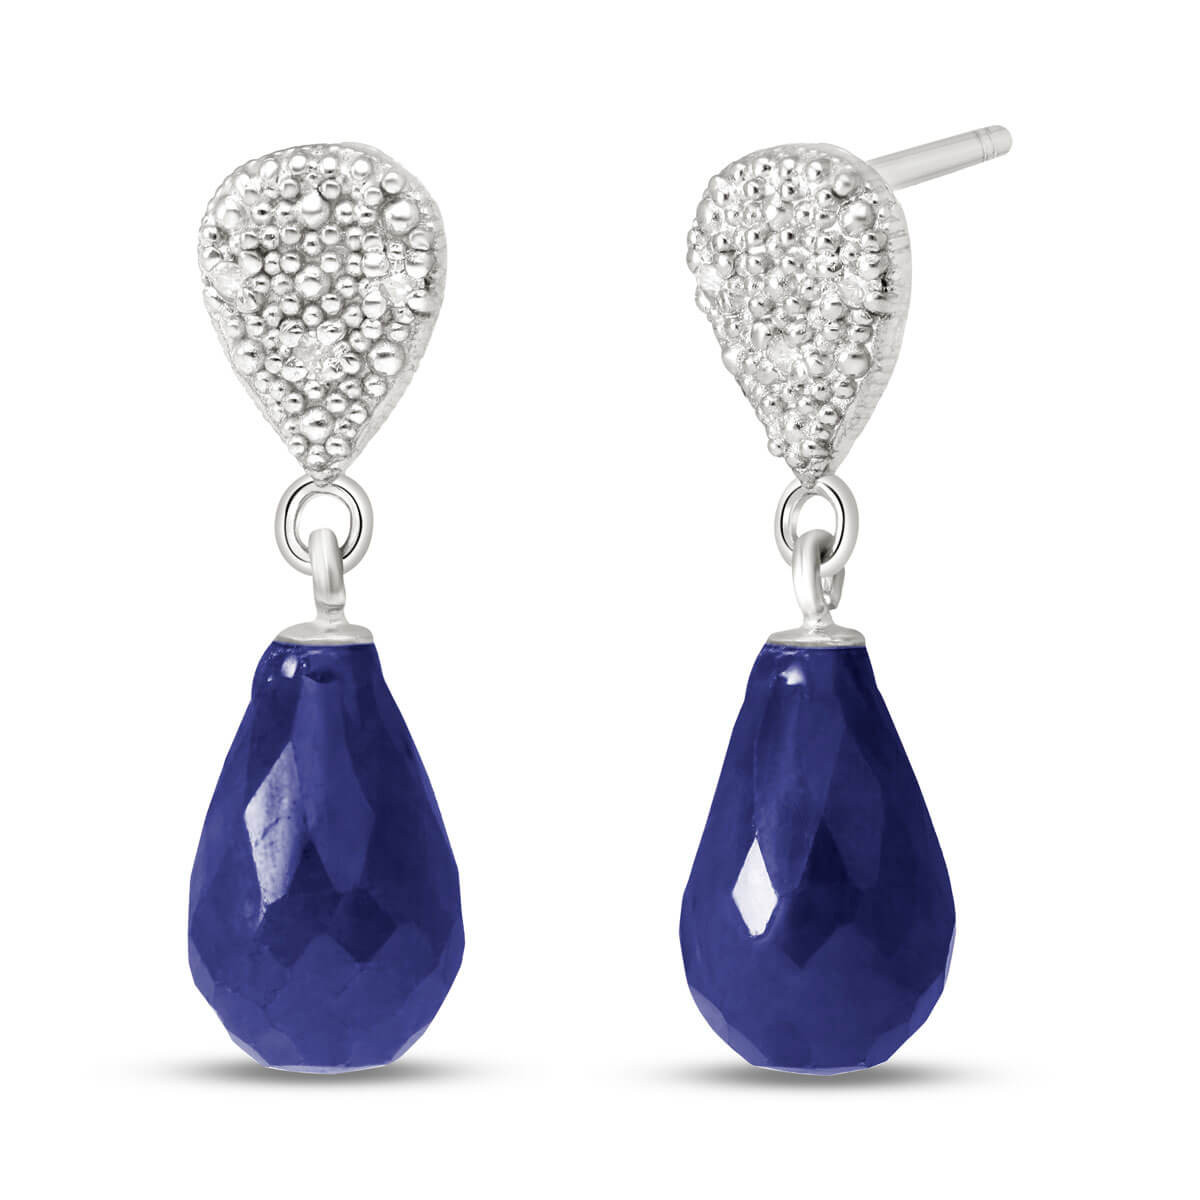 Sapphire & Diamond Droplet Earrings in 9ct White Gold